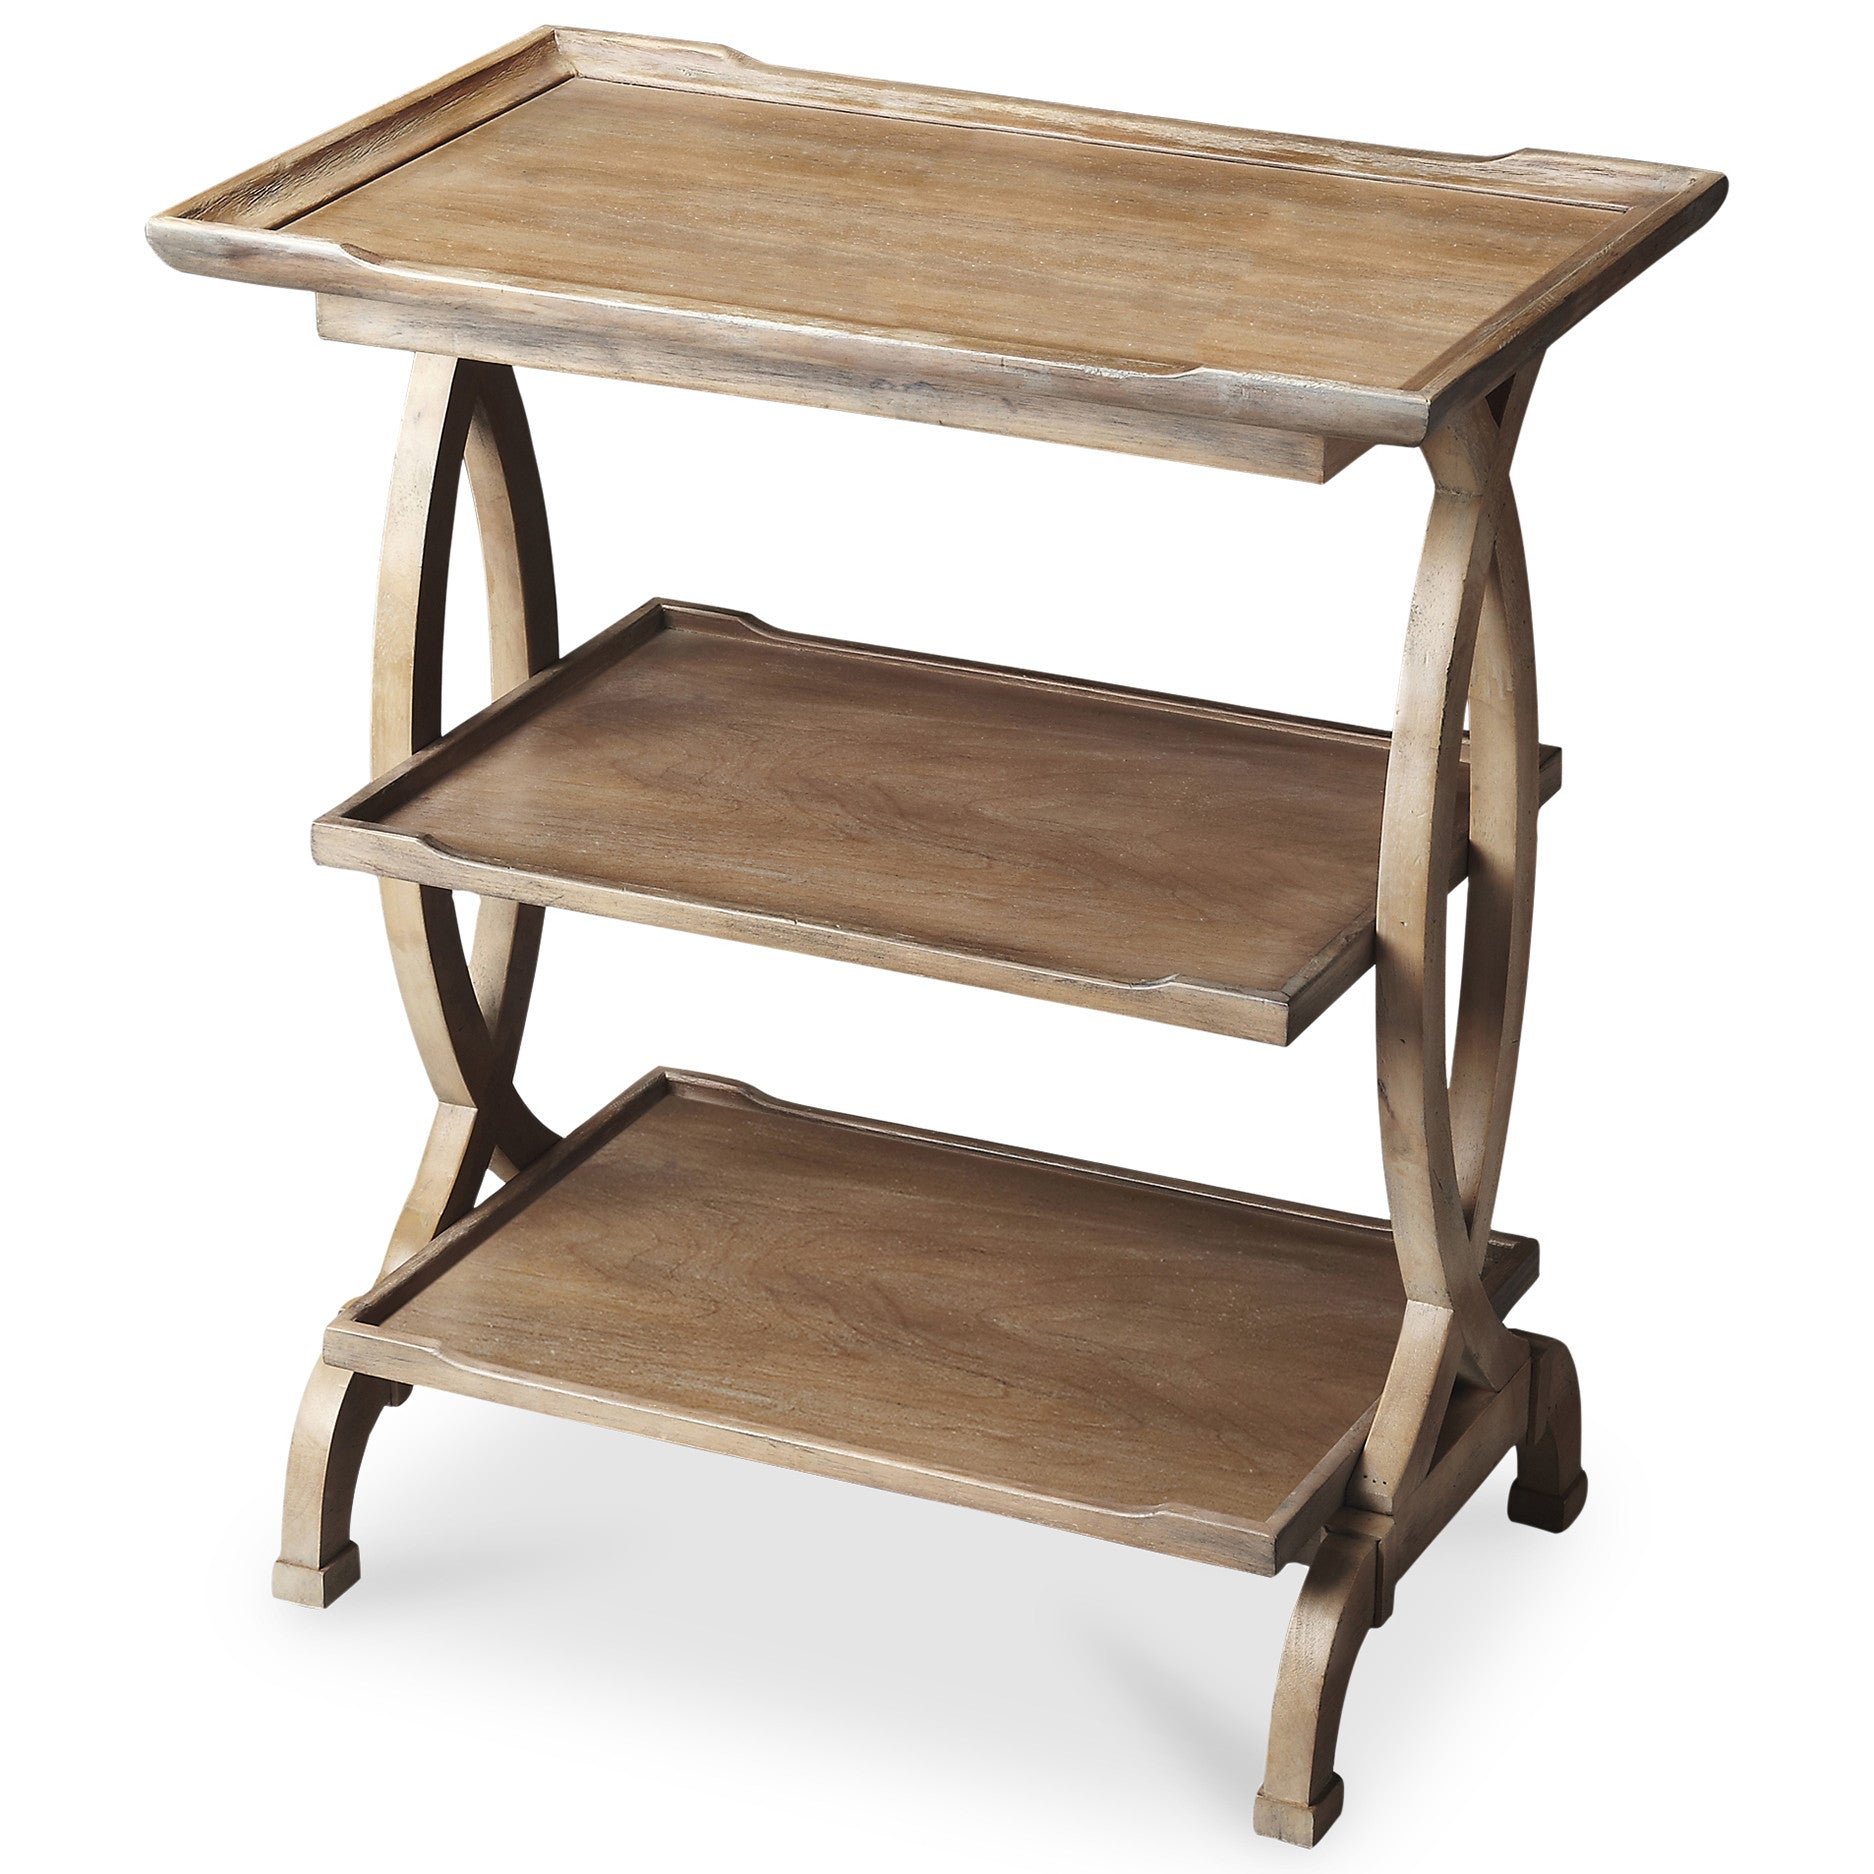 3 Tiered Rustic Farmhouse End Table